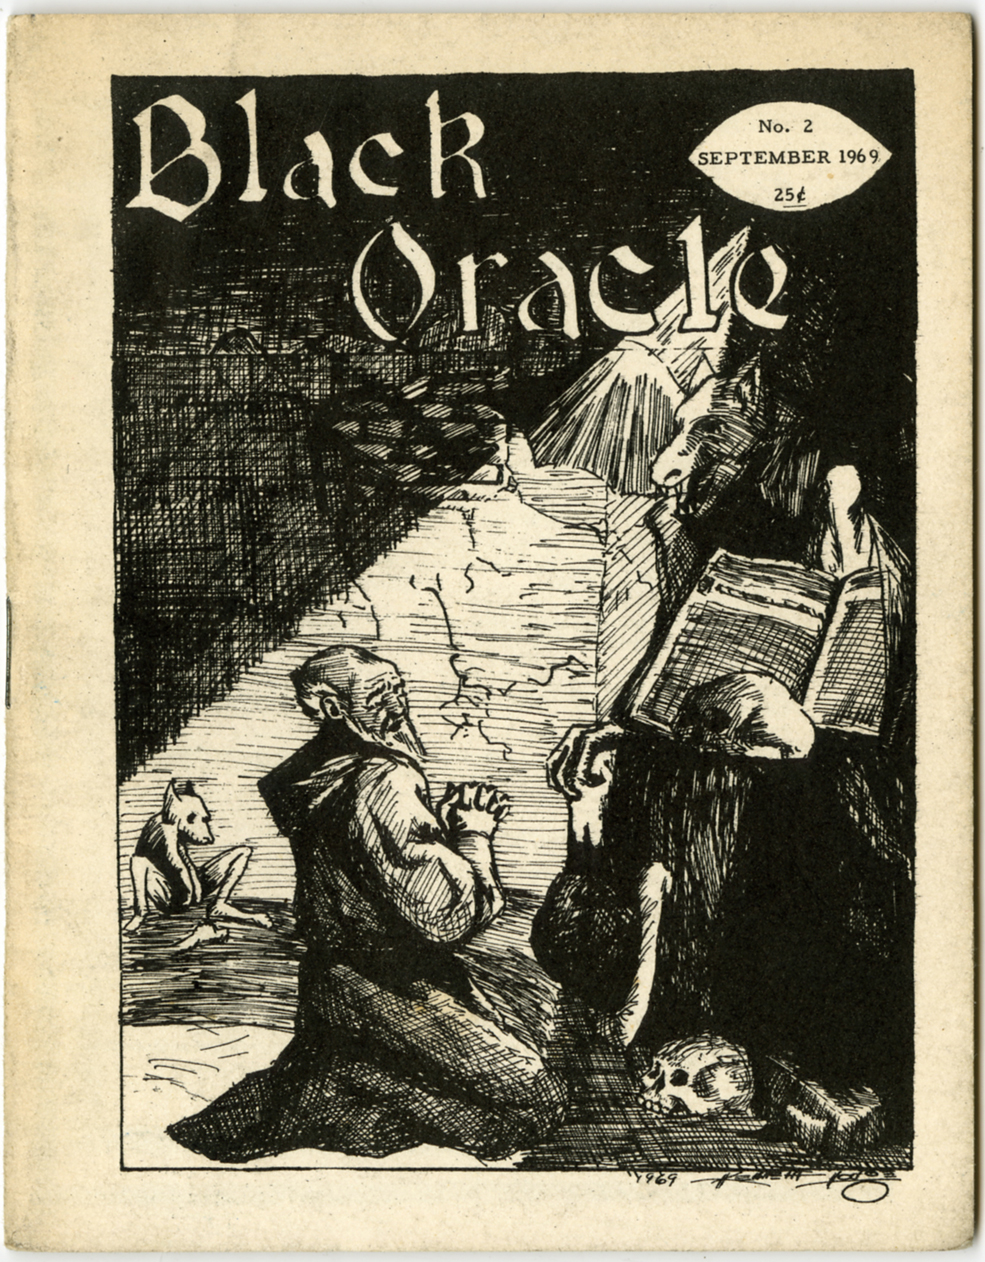 BLACK ORACLE #2 (1969) FANZINE ROBT BLOCH INTERVIEW